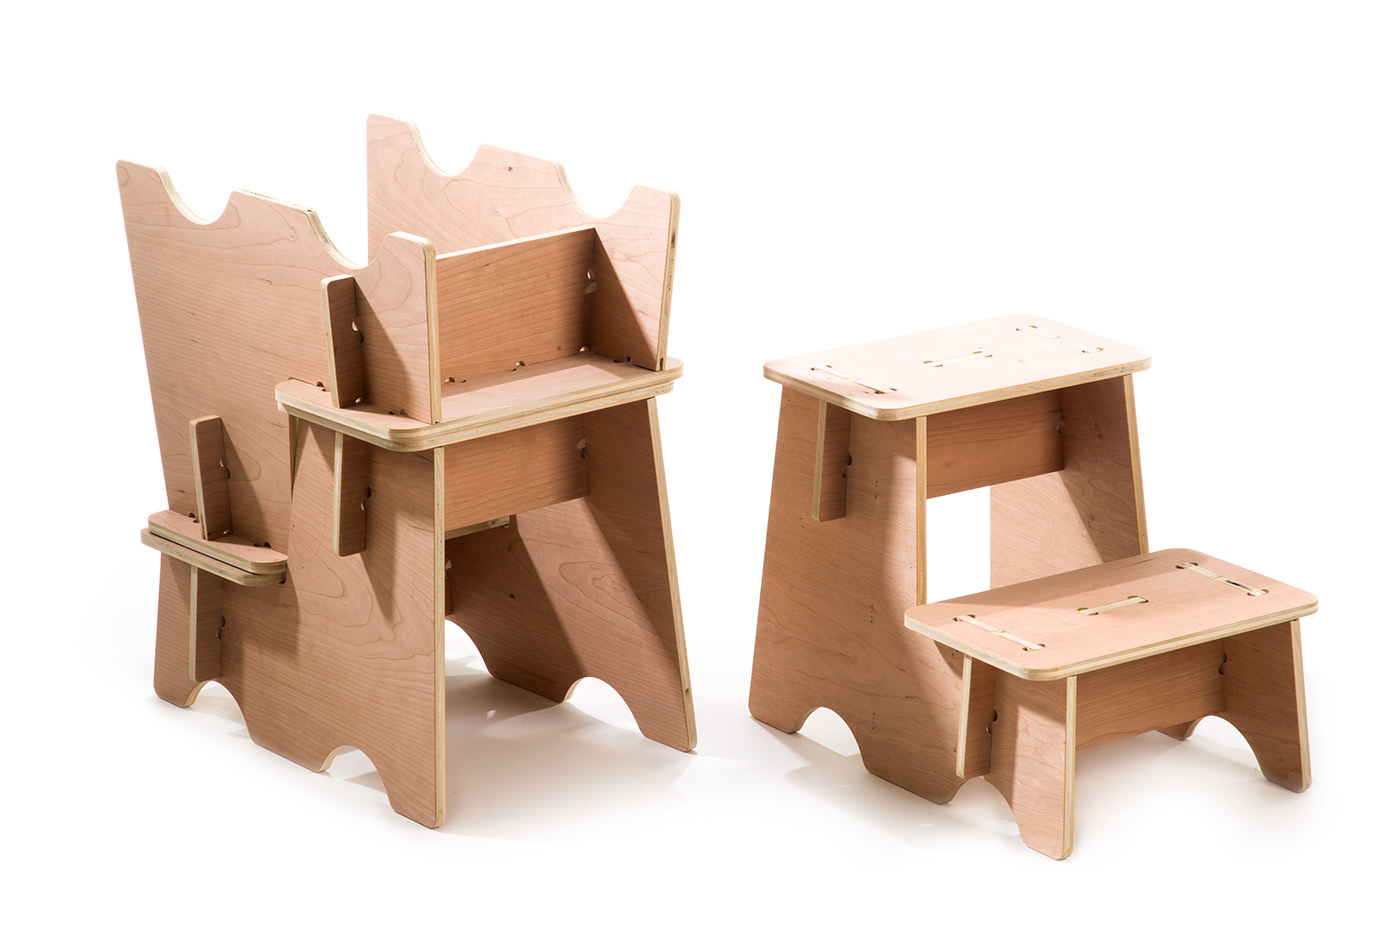 cnc,furniture design ,plywood,Rapid Prototyping,woodworking